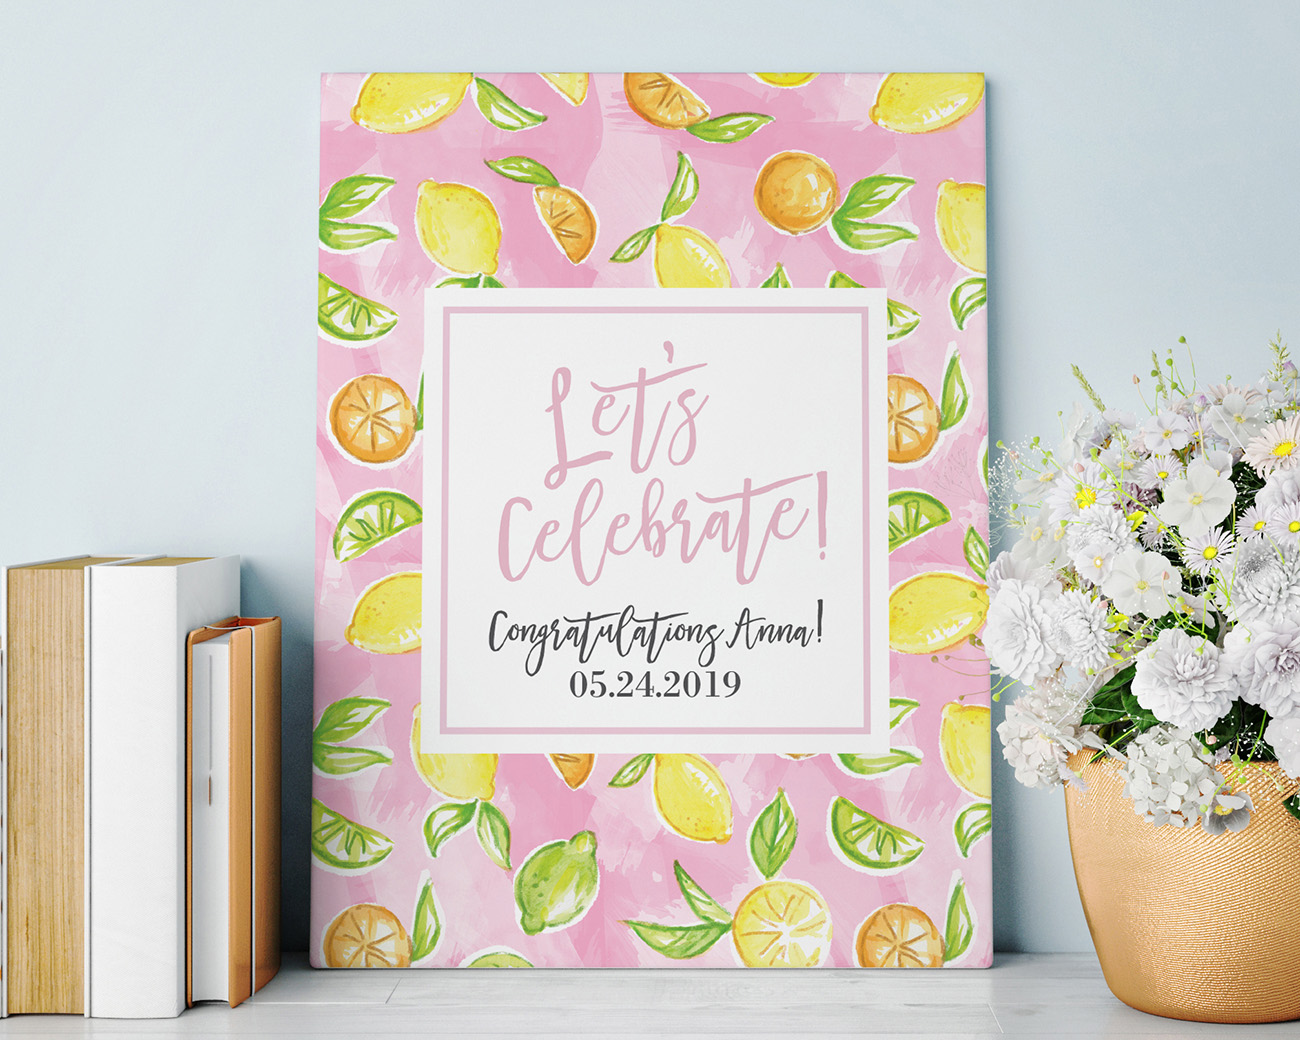 Let's Celebrate Poster with Citrus Theme